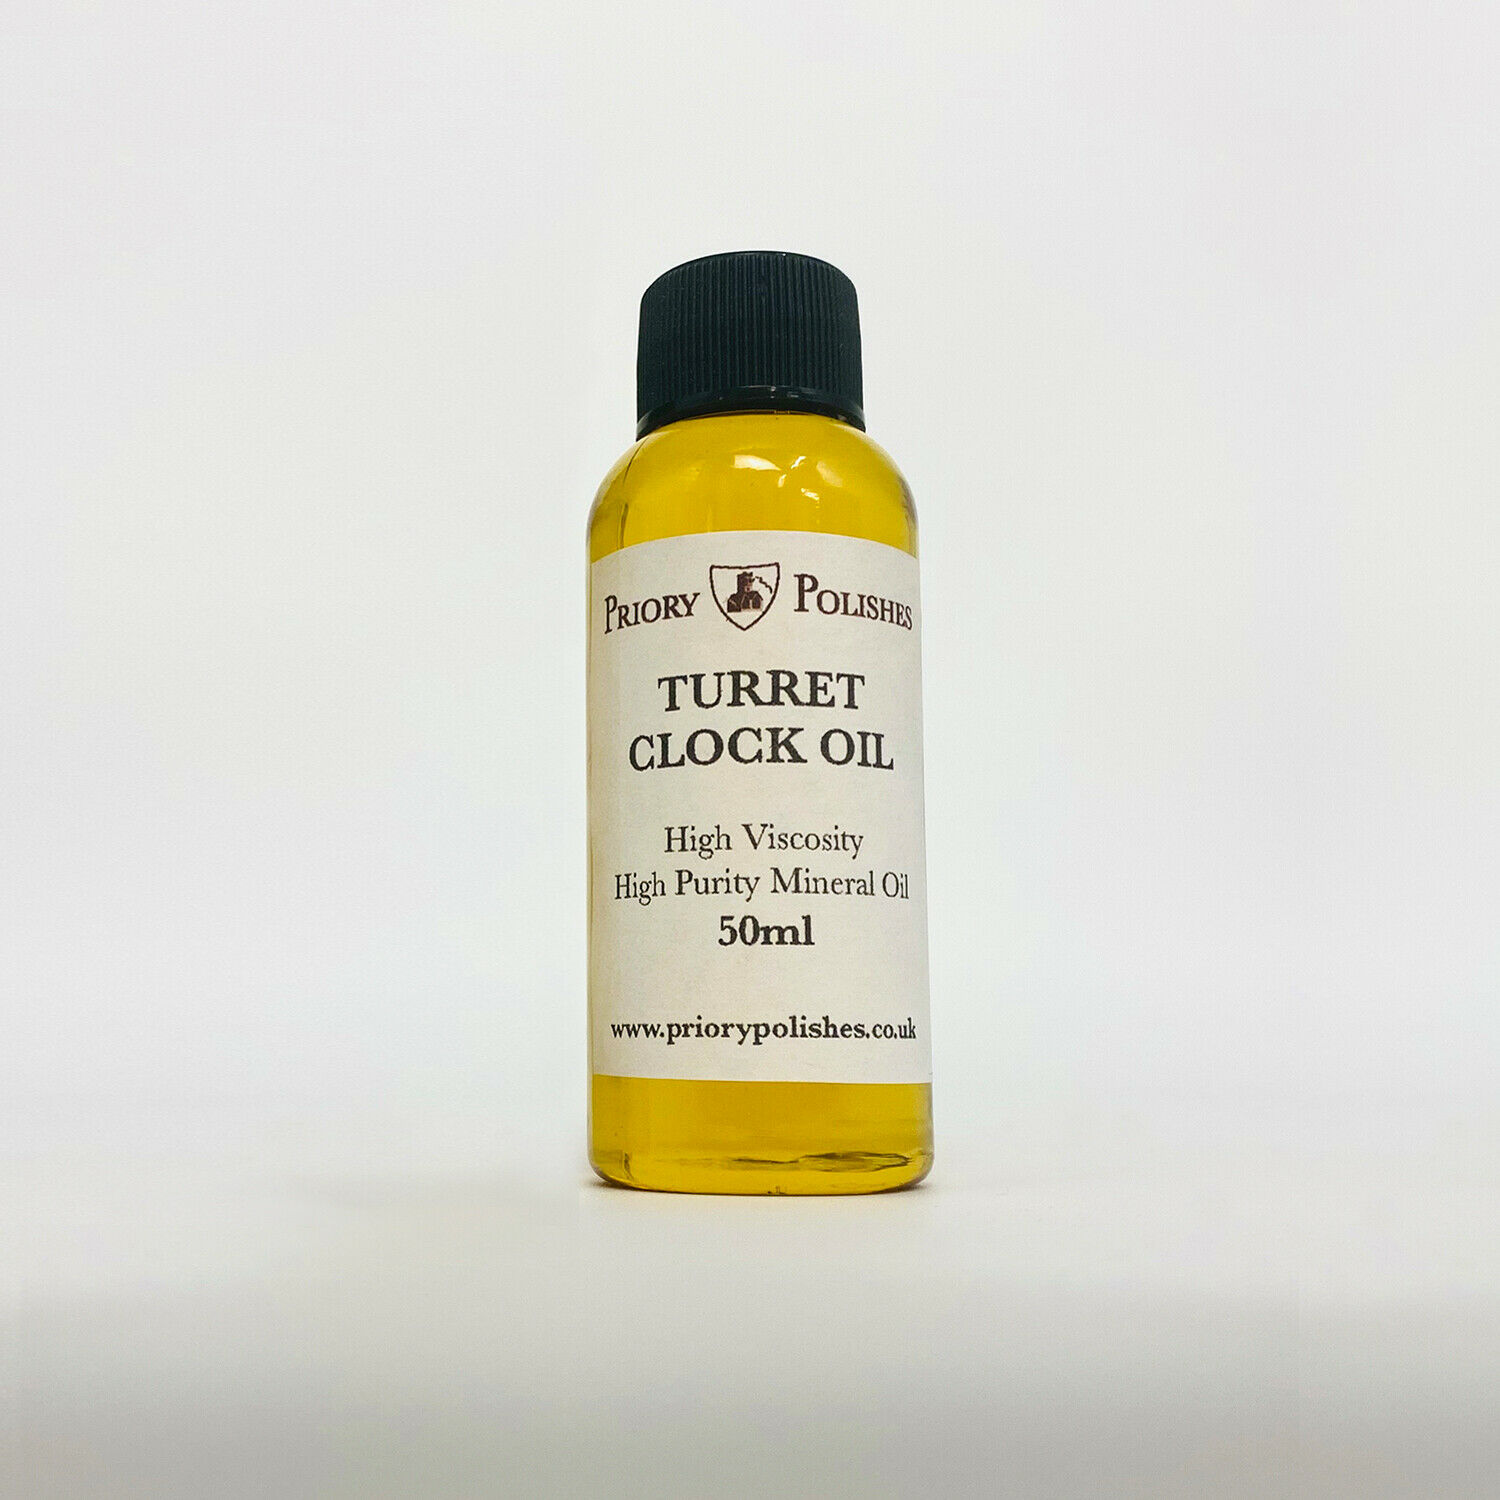 Priory Turret Clock Oil 100 ml- A Quality Heavy Oil for the larger Clocks